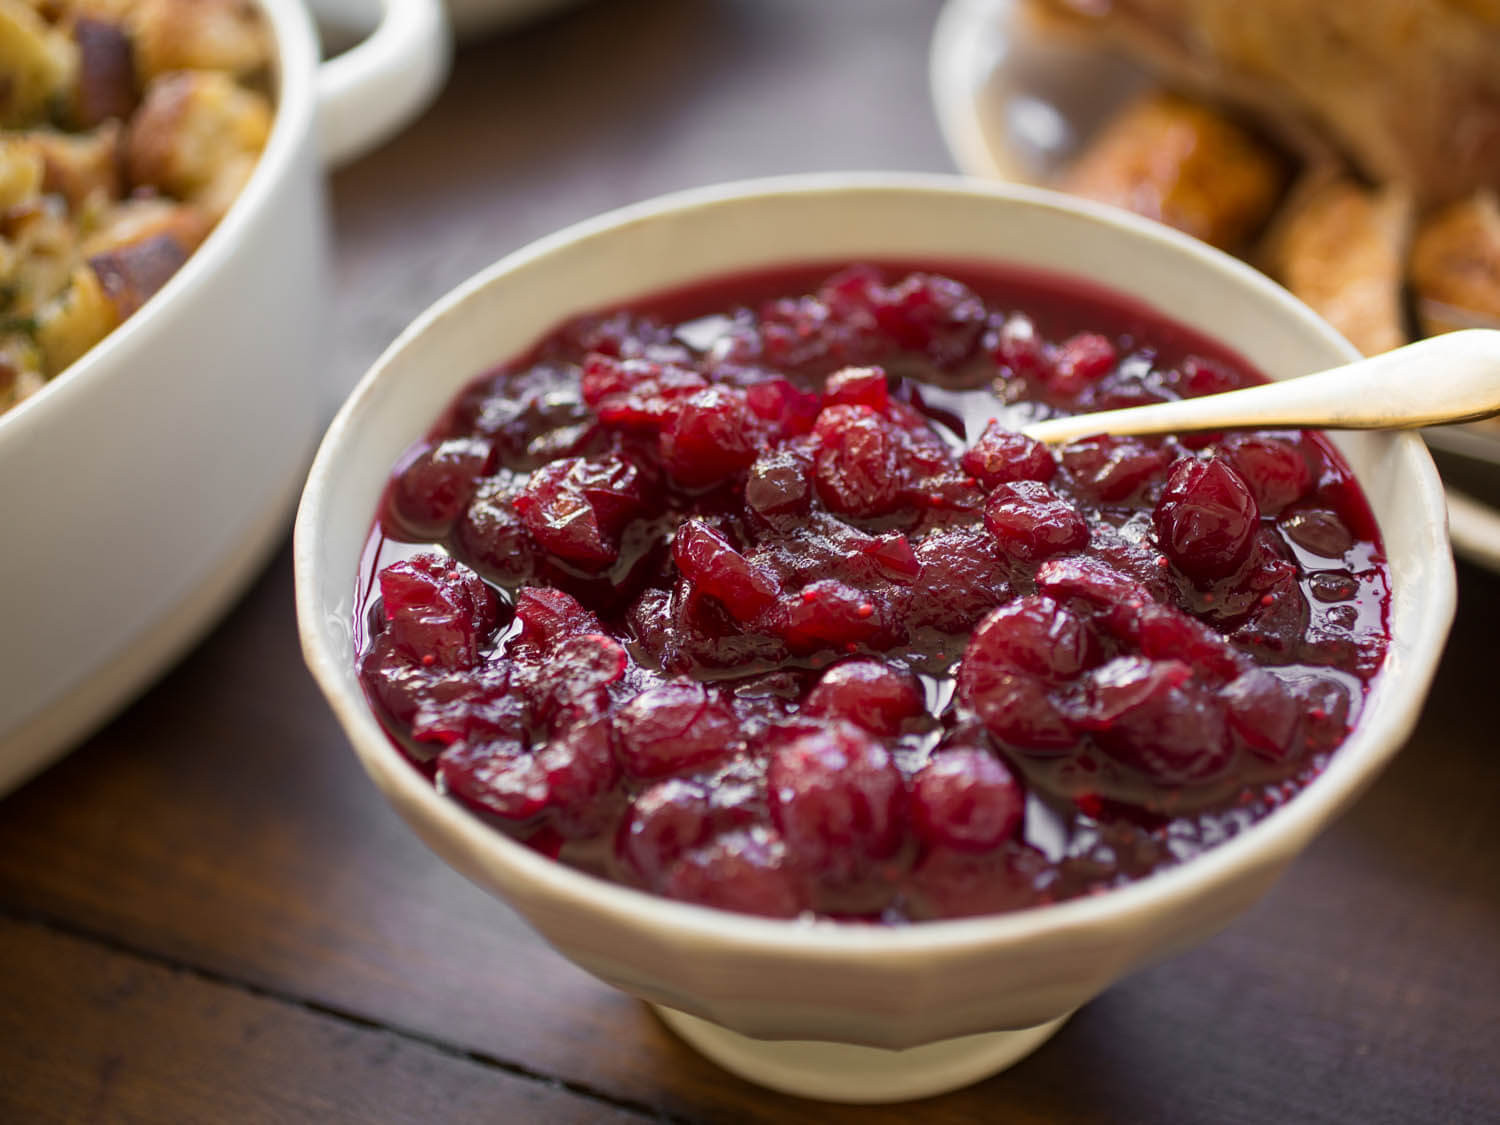 Cranberry Desserts For Thanksgiving  Thanksgiving Cranberry Sauce Recipes